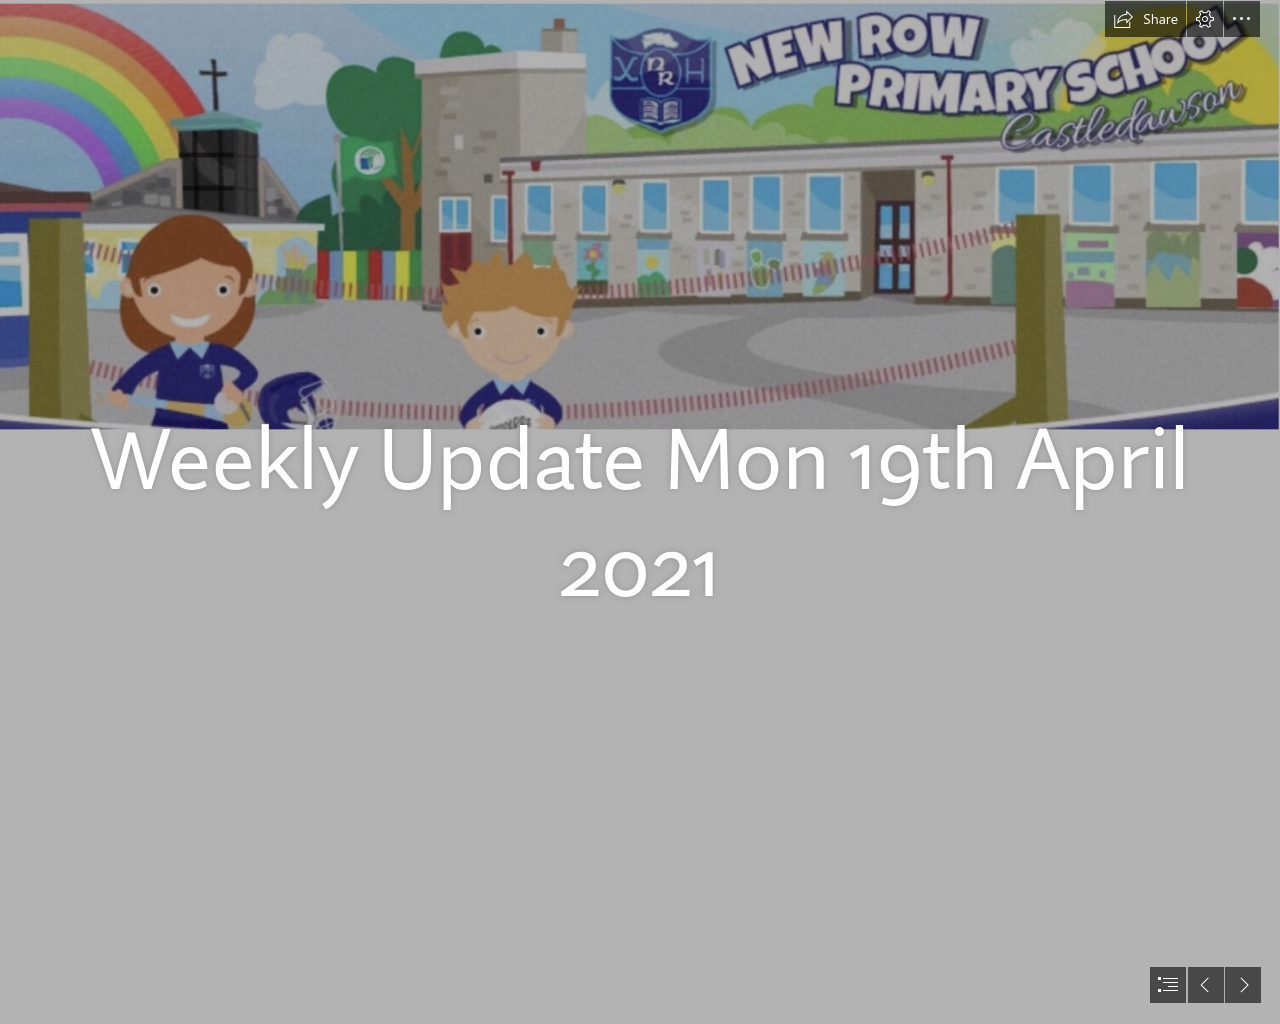 Weekly Update Mon 19th April 21